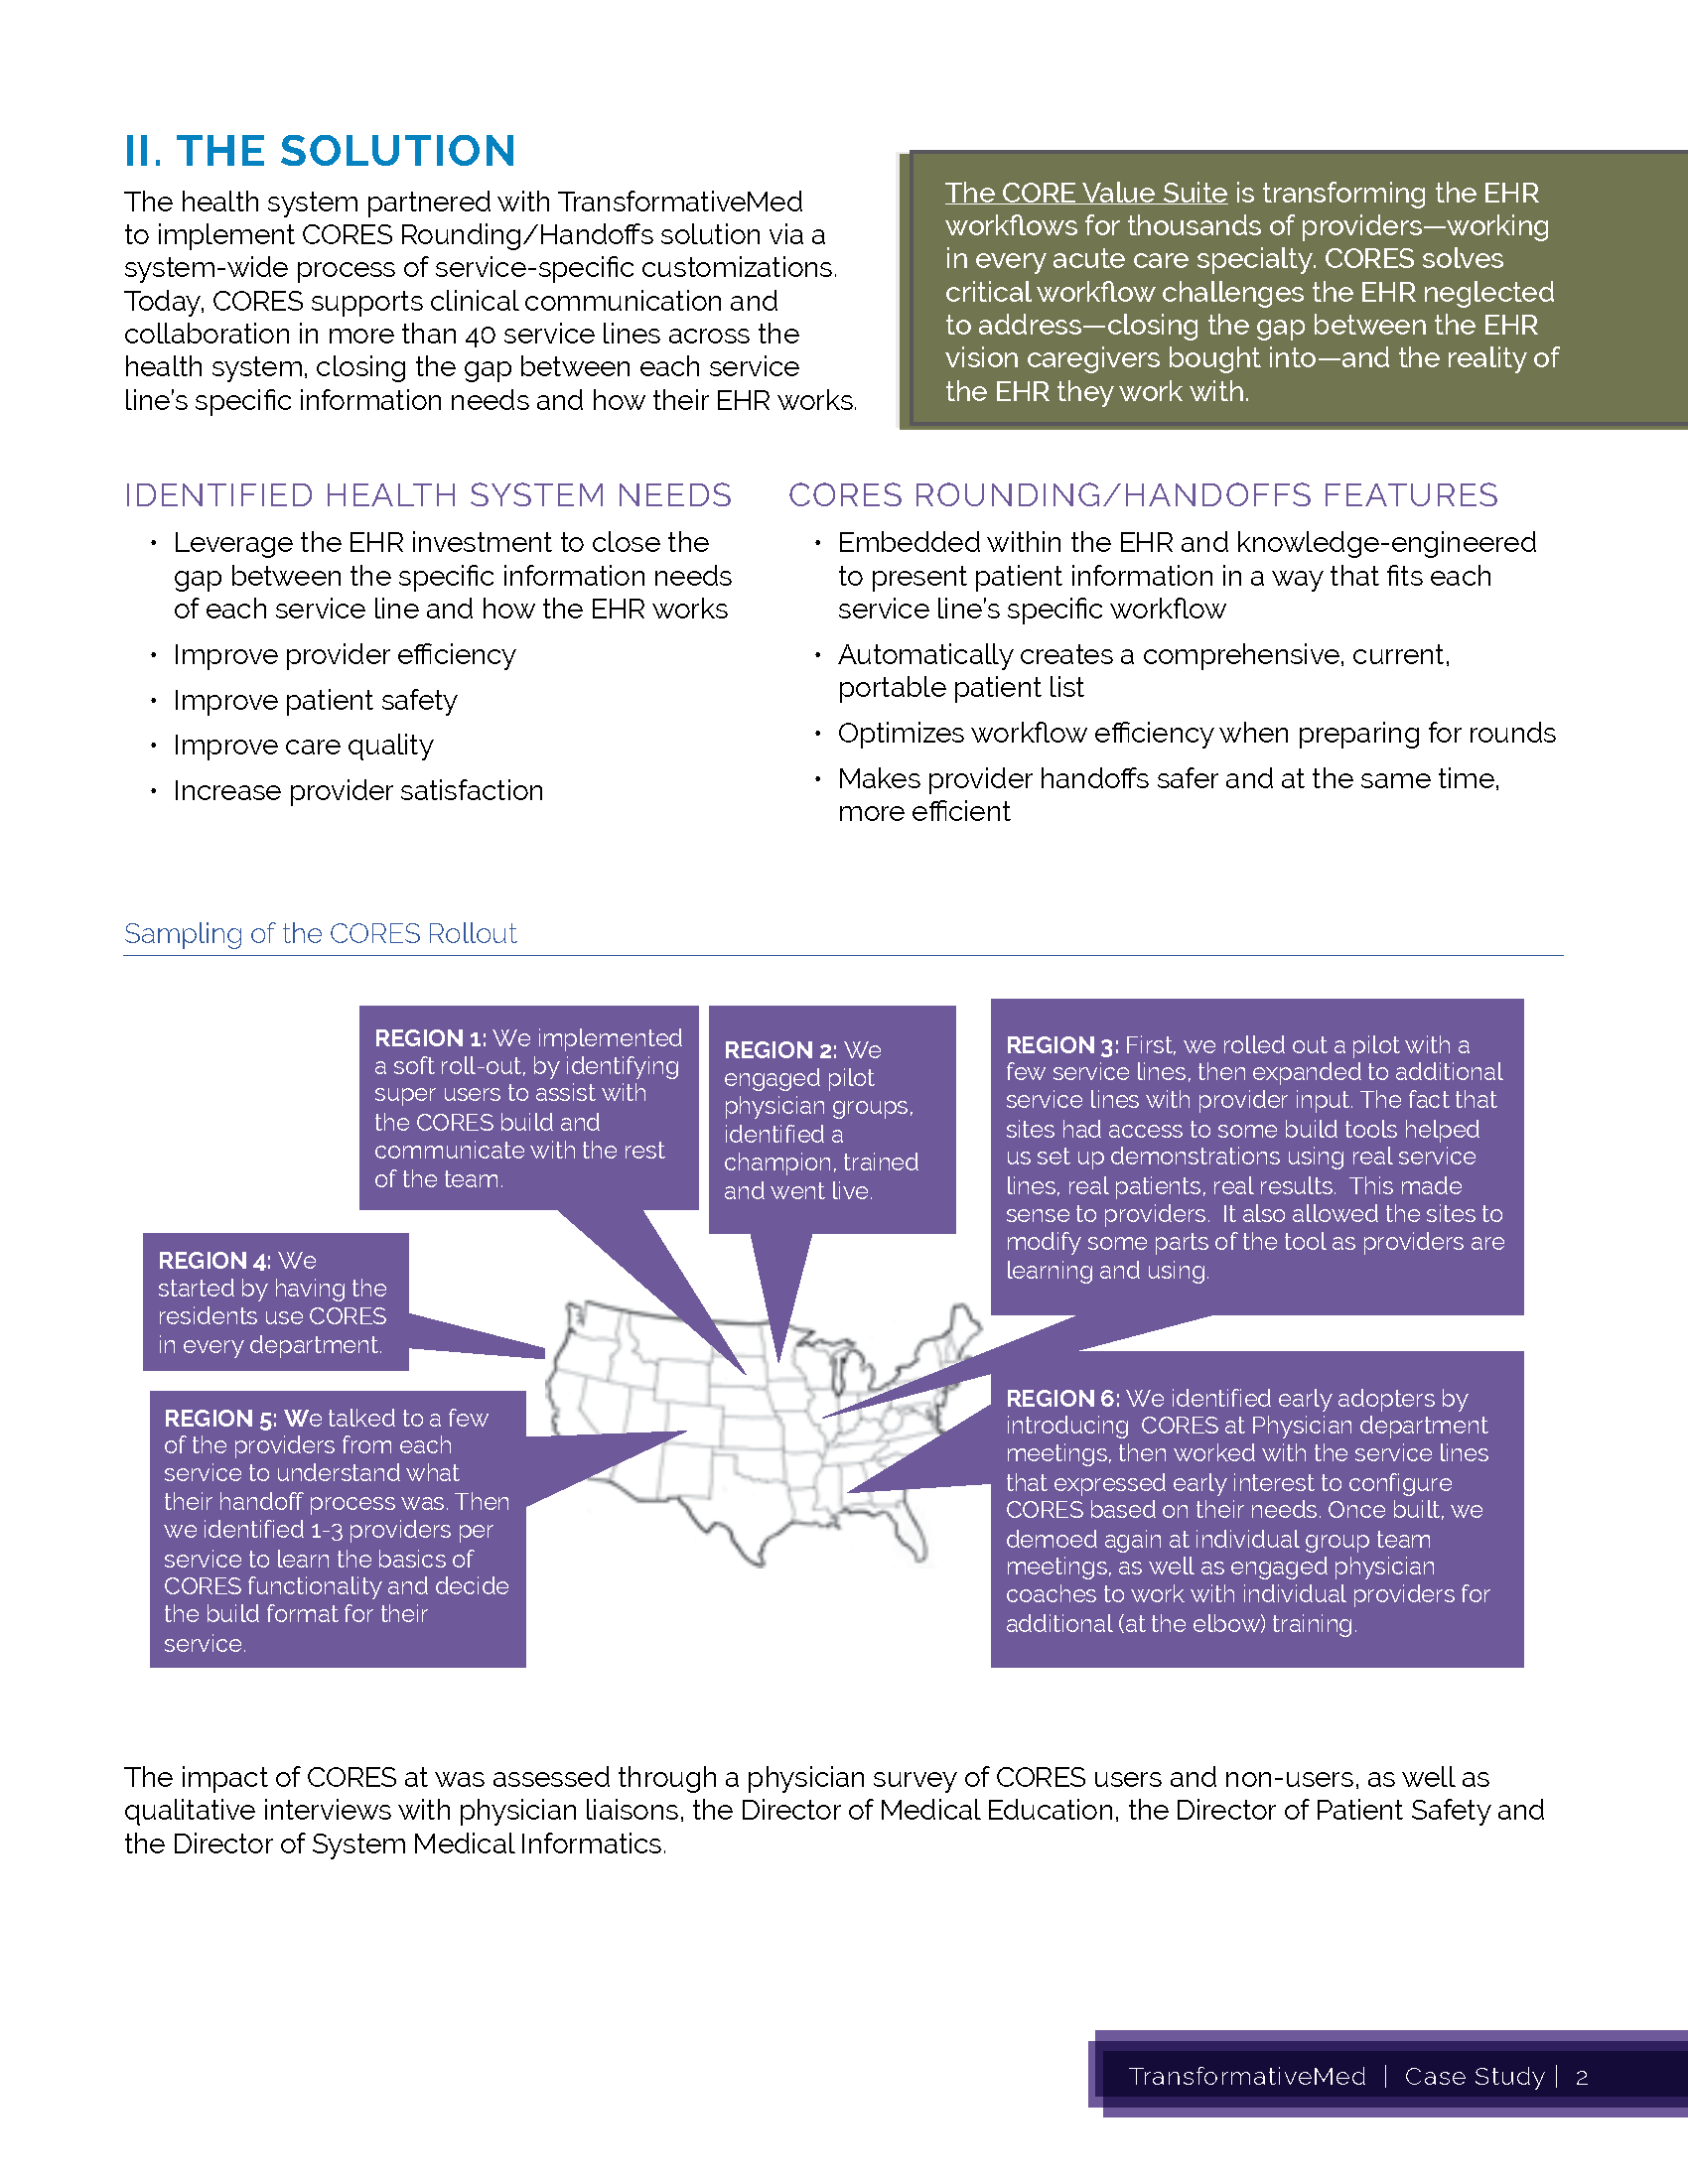 TransformativeMed-Case-Study-digital-simple_Page_02.png